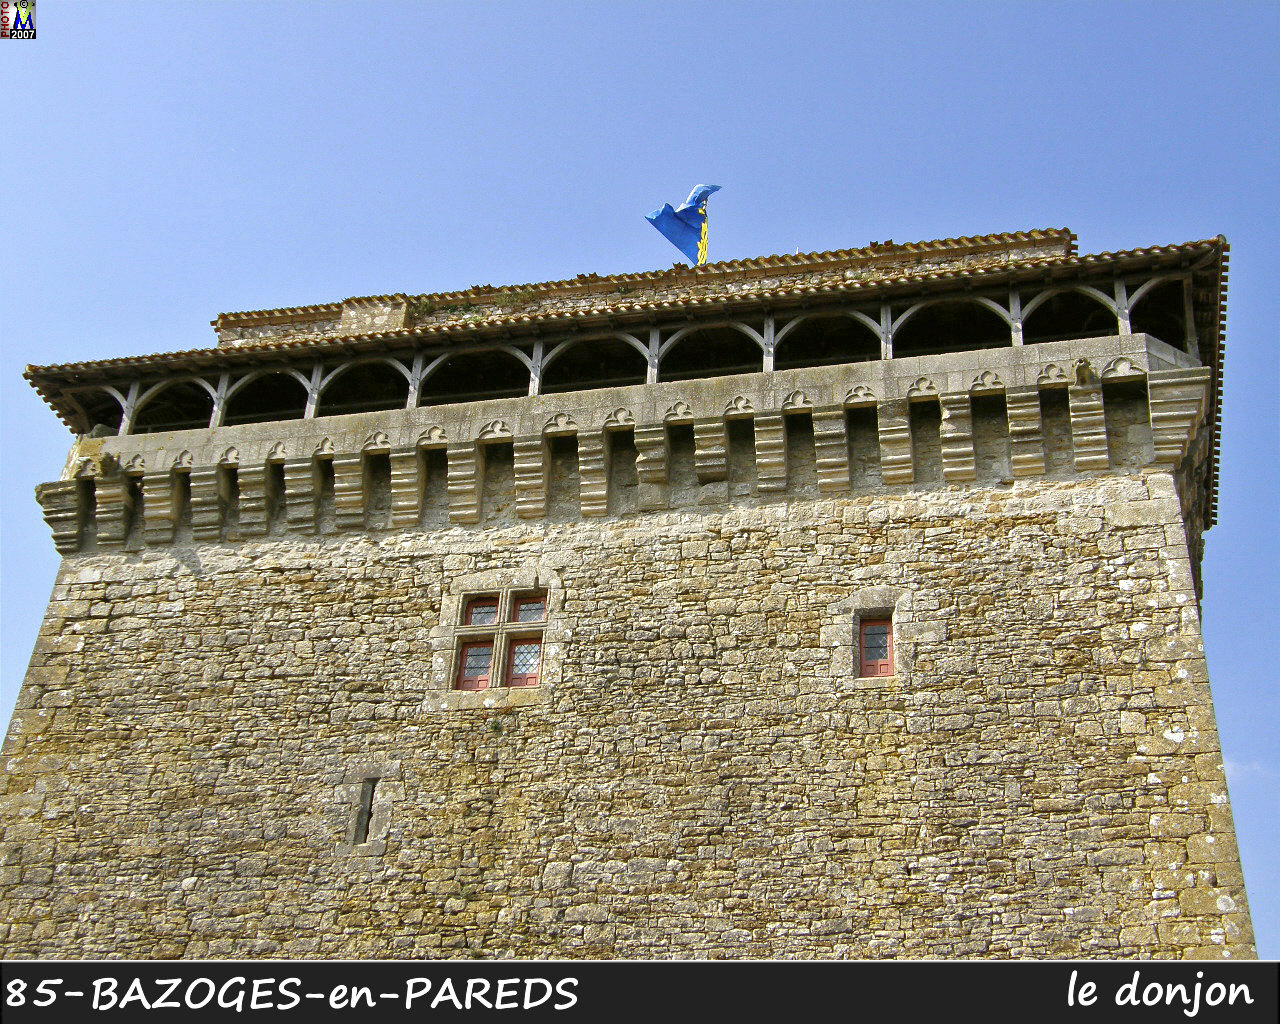 85BAZOGES-PAREDS_donjon_104.jpg